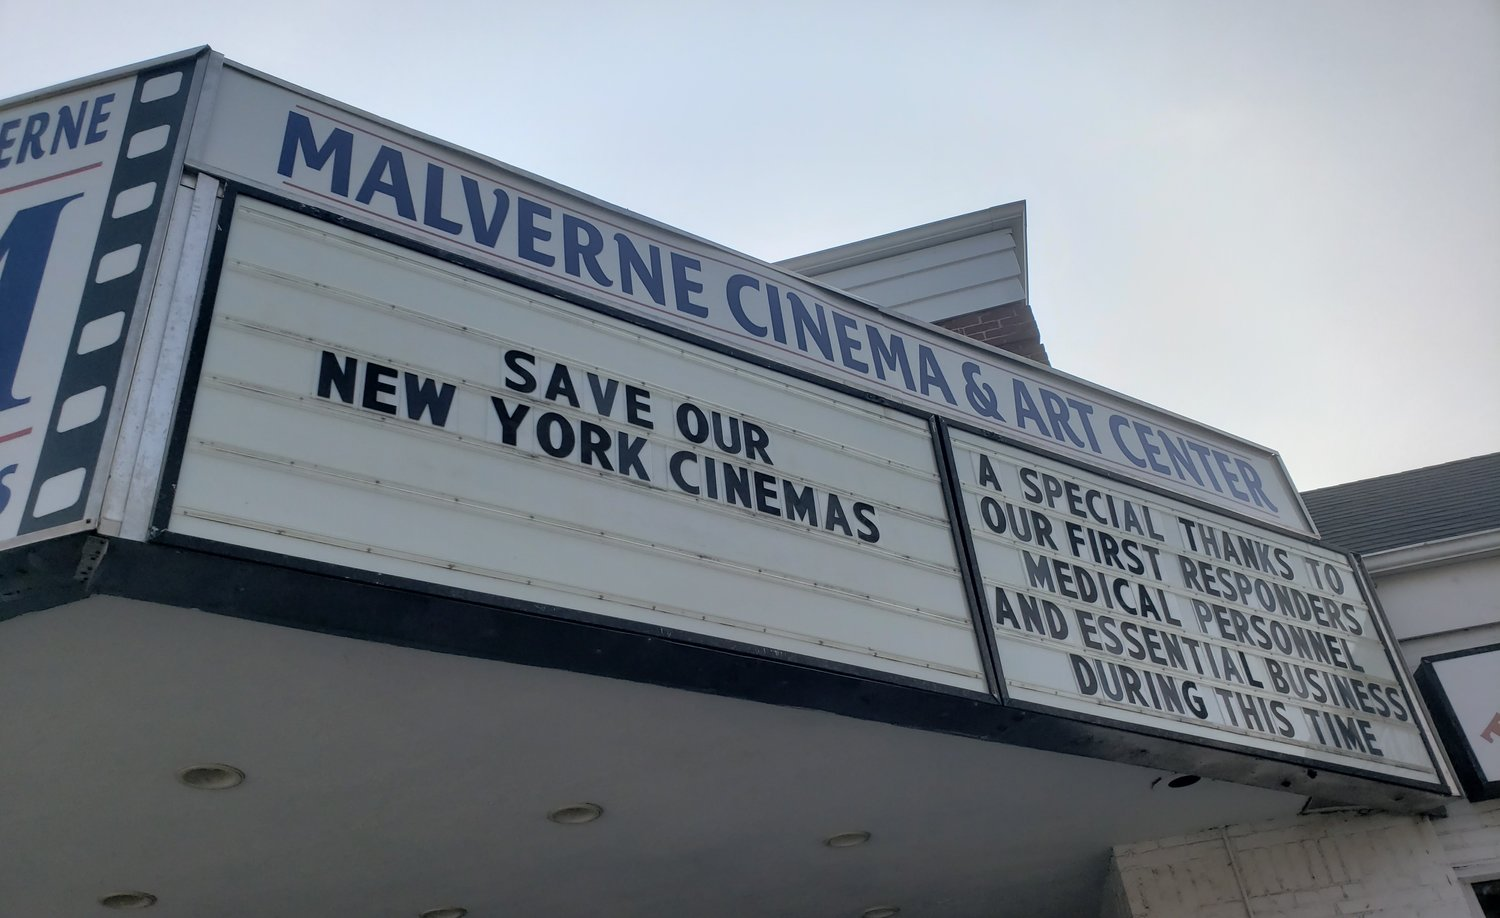 Malverne Cinema Remains Last In Line For Reopening Herald Community Newspapers Www Liherald Com